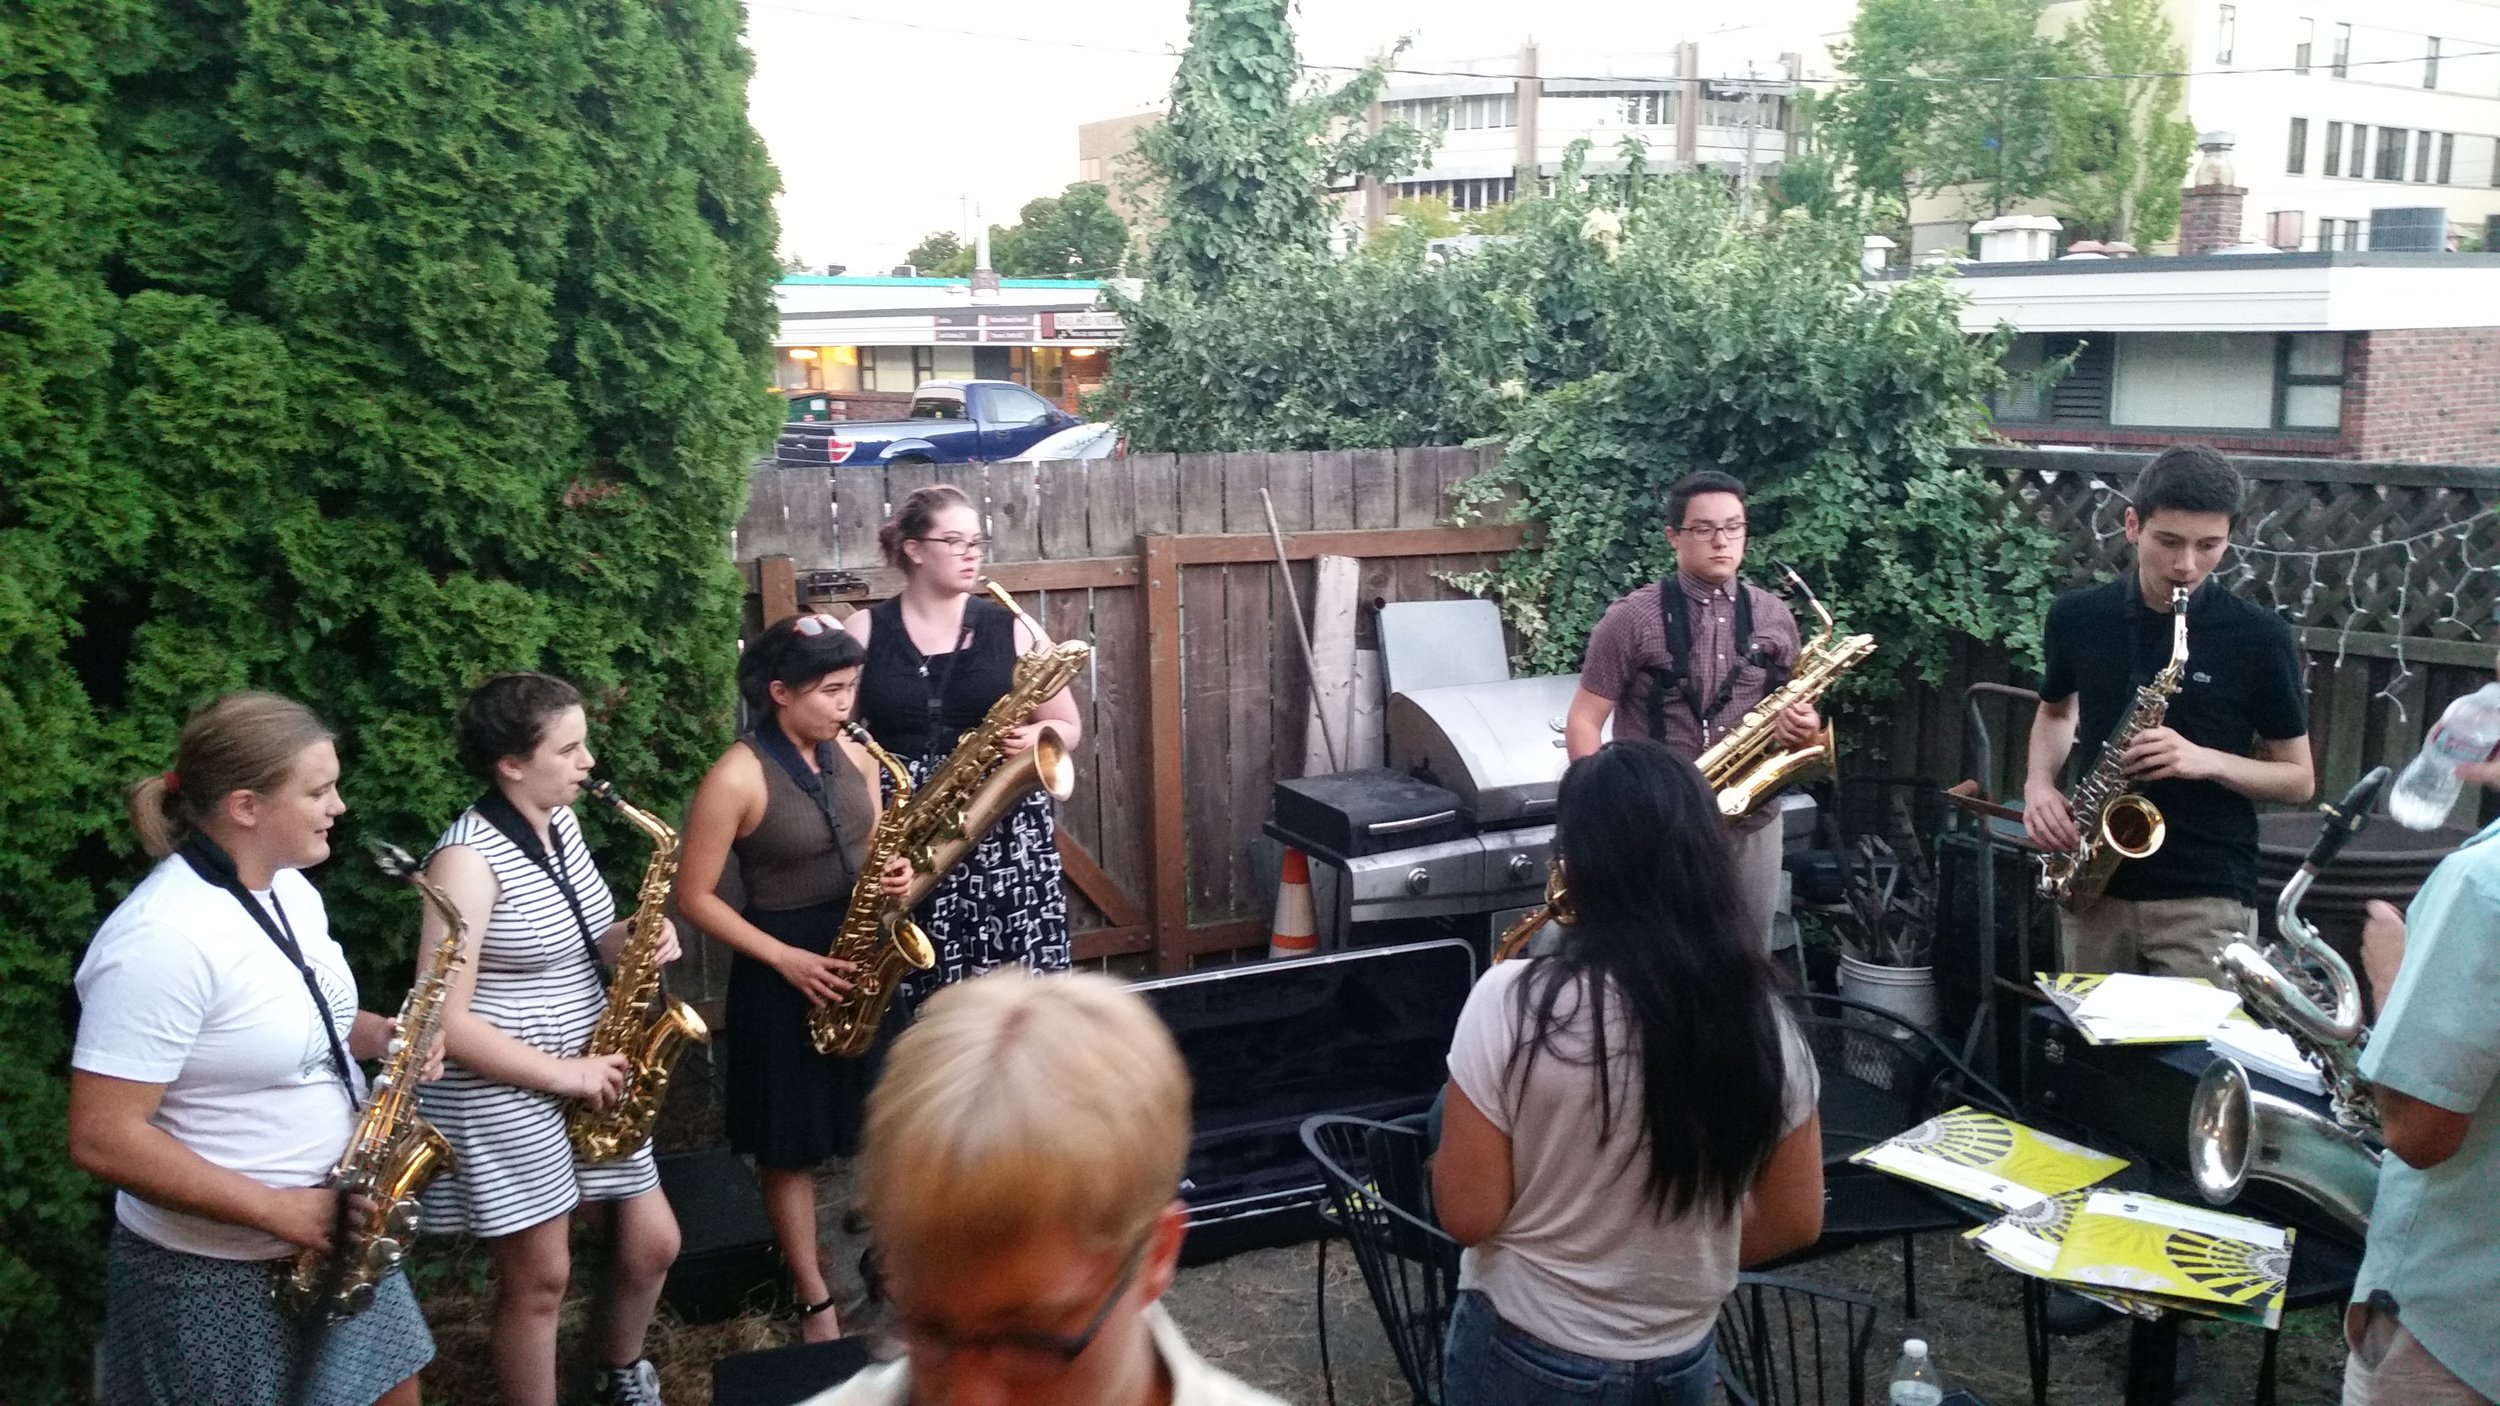 Students hang outside Egan's Ballard Jam House just before their culminating performance that evening.